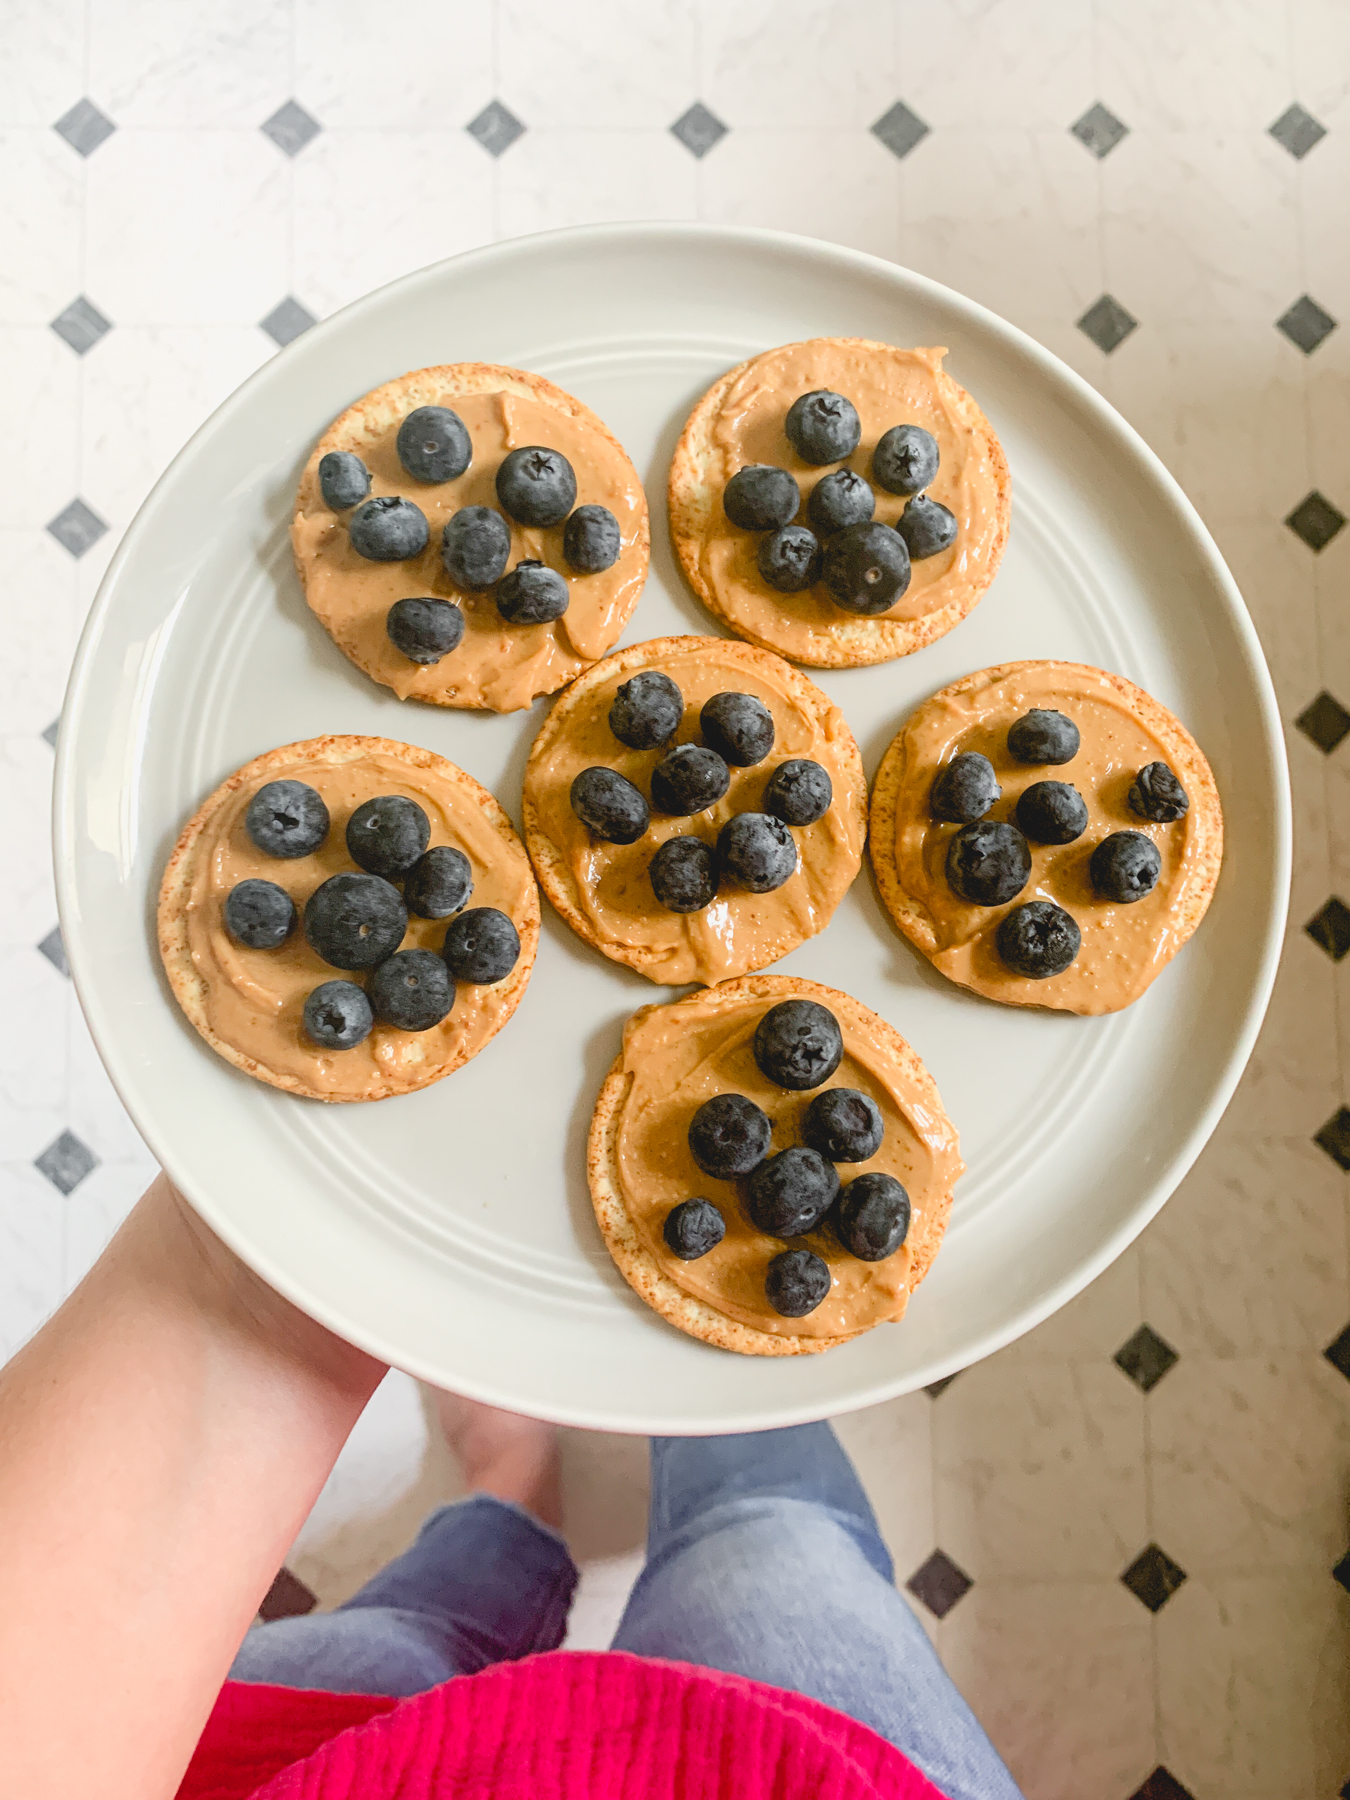 peanut butter whole grain crackers with blueberries